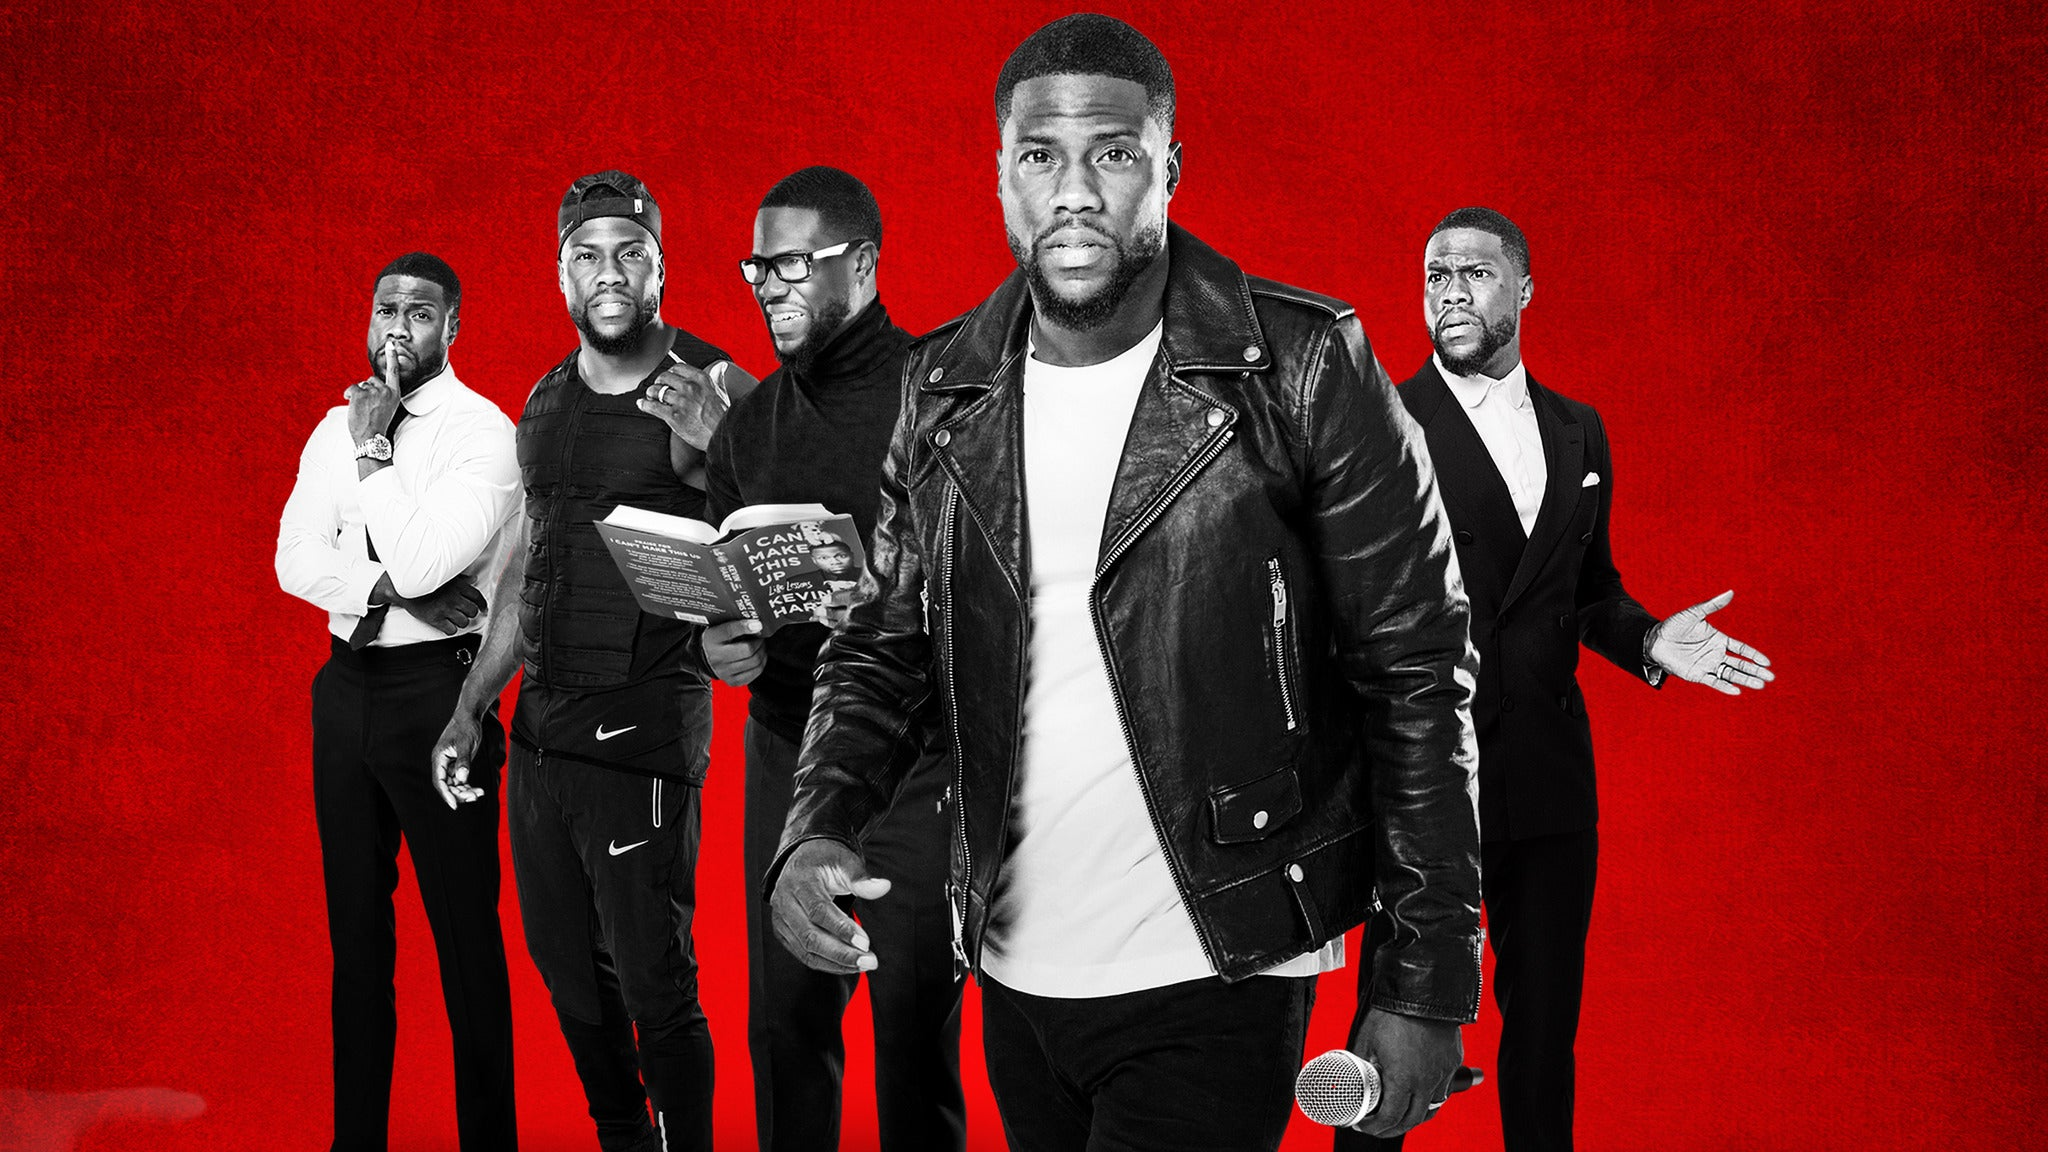 Kevin Hart: The Irresponsible Tour at U.S. Cellular Center